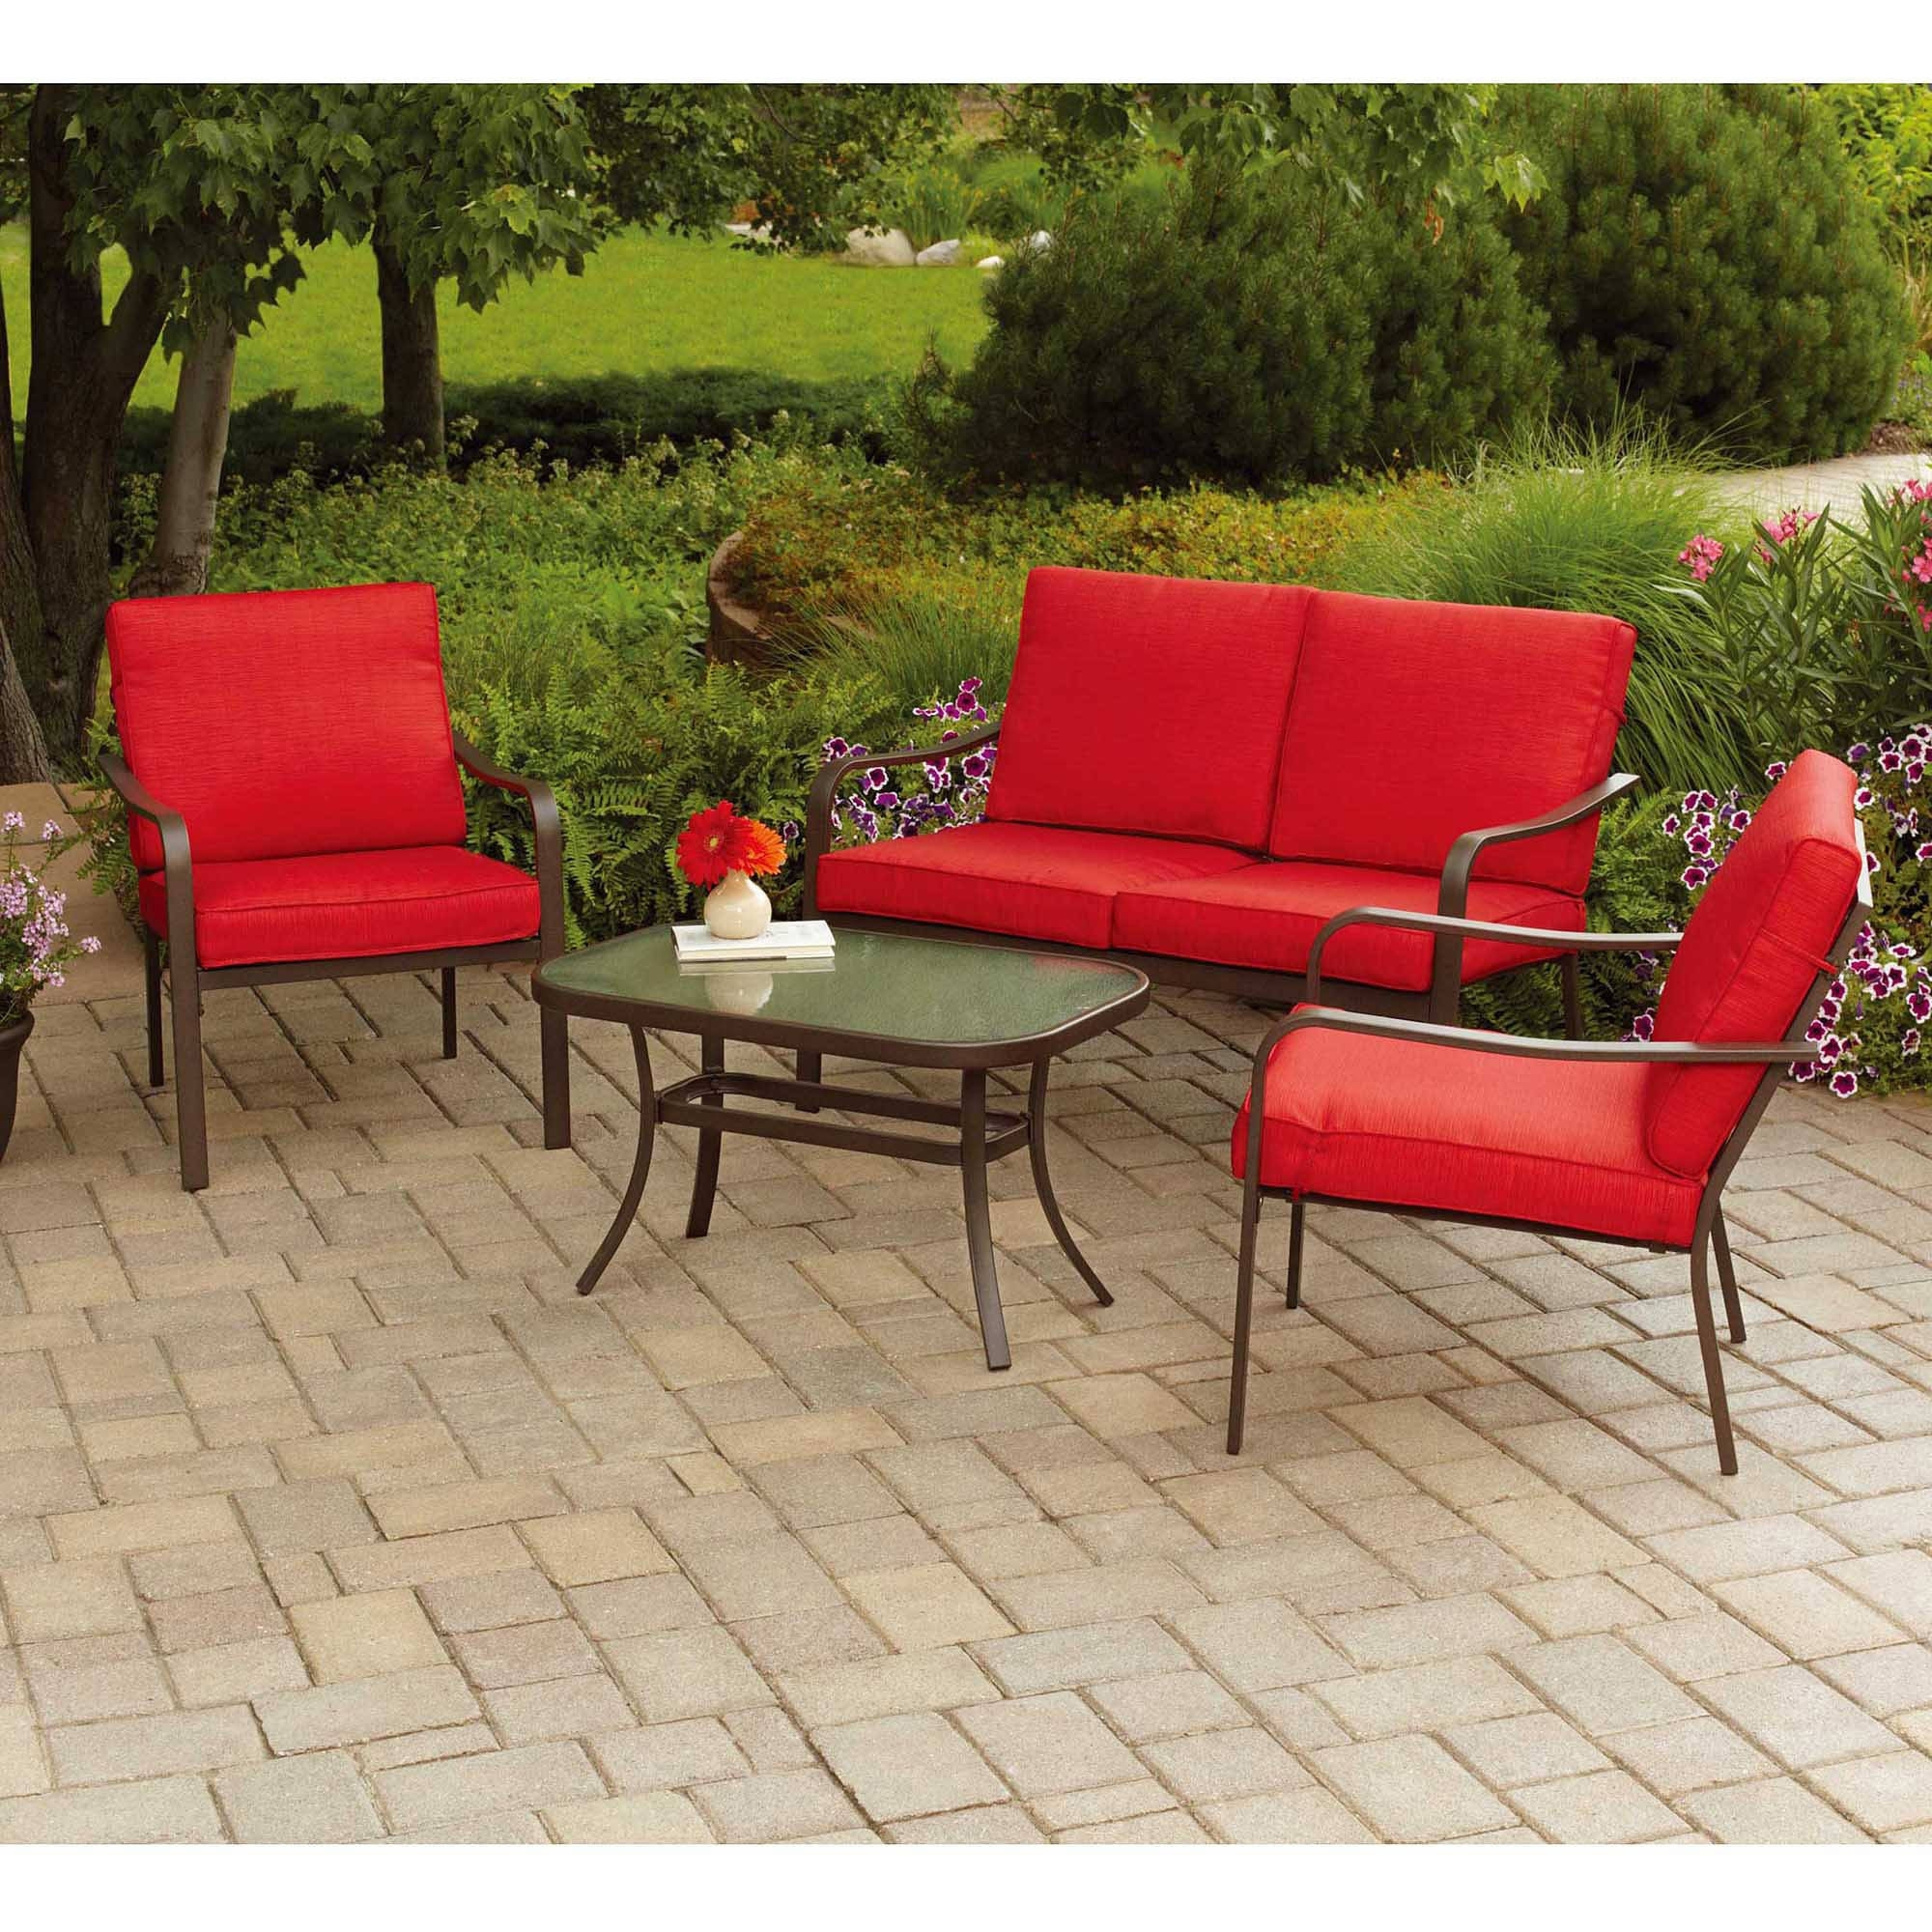 4 Piece Patio Conversation Sets In Favorite Mainstays Stanton Cushioned 4 Piece Patio Conversation Set, Seats (View 7 of 20)